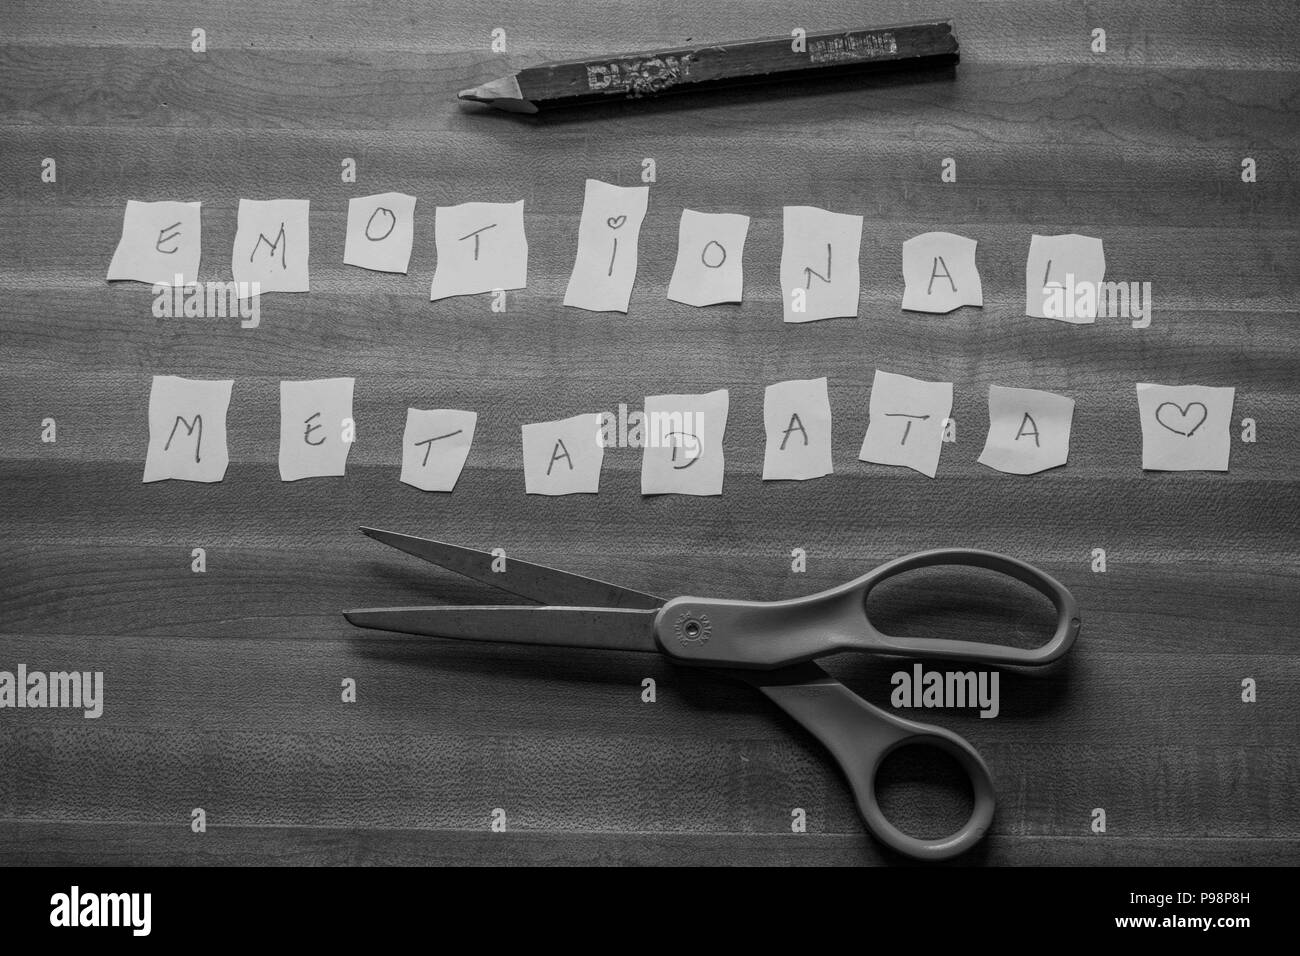 emotional metadata letters cut out of paper in black and white - Stock Image